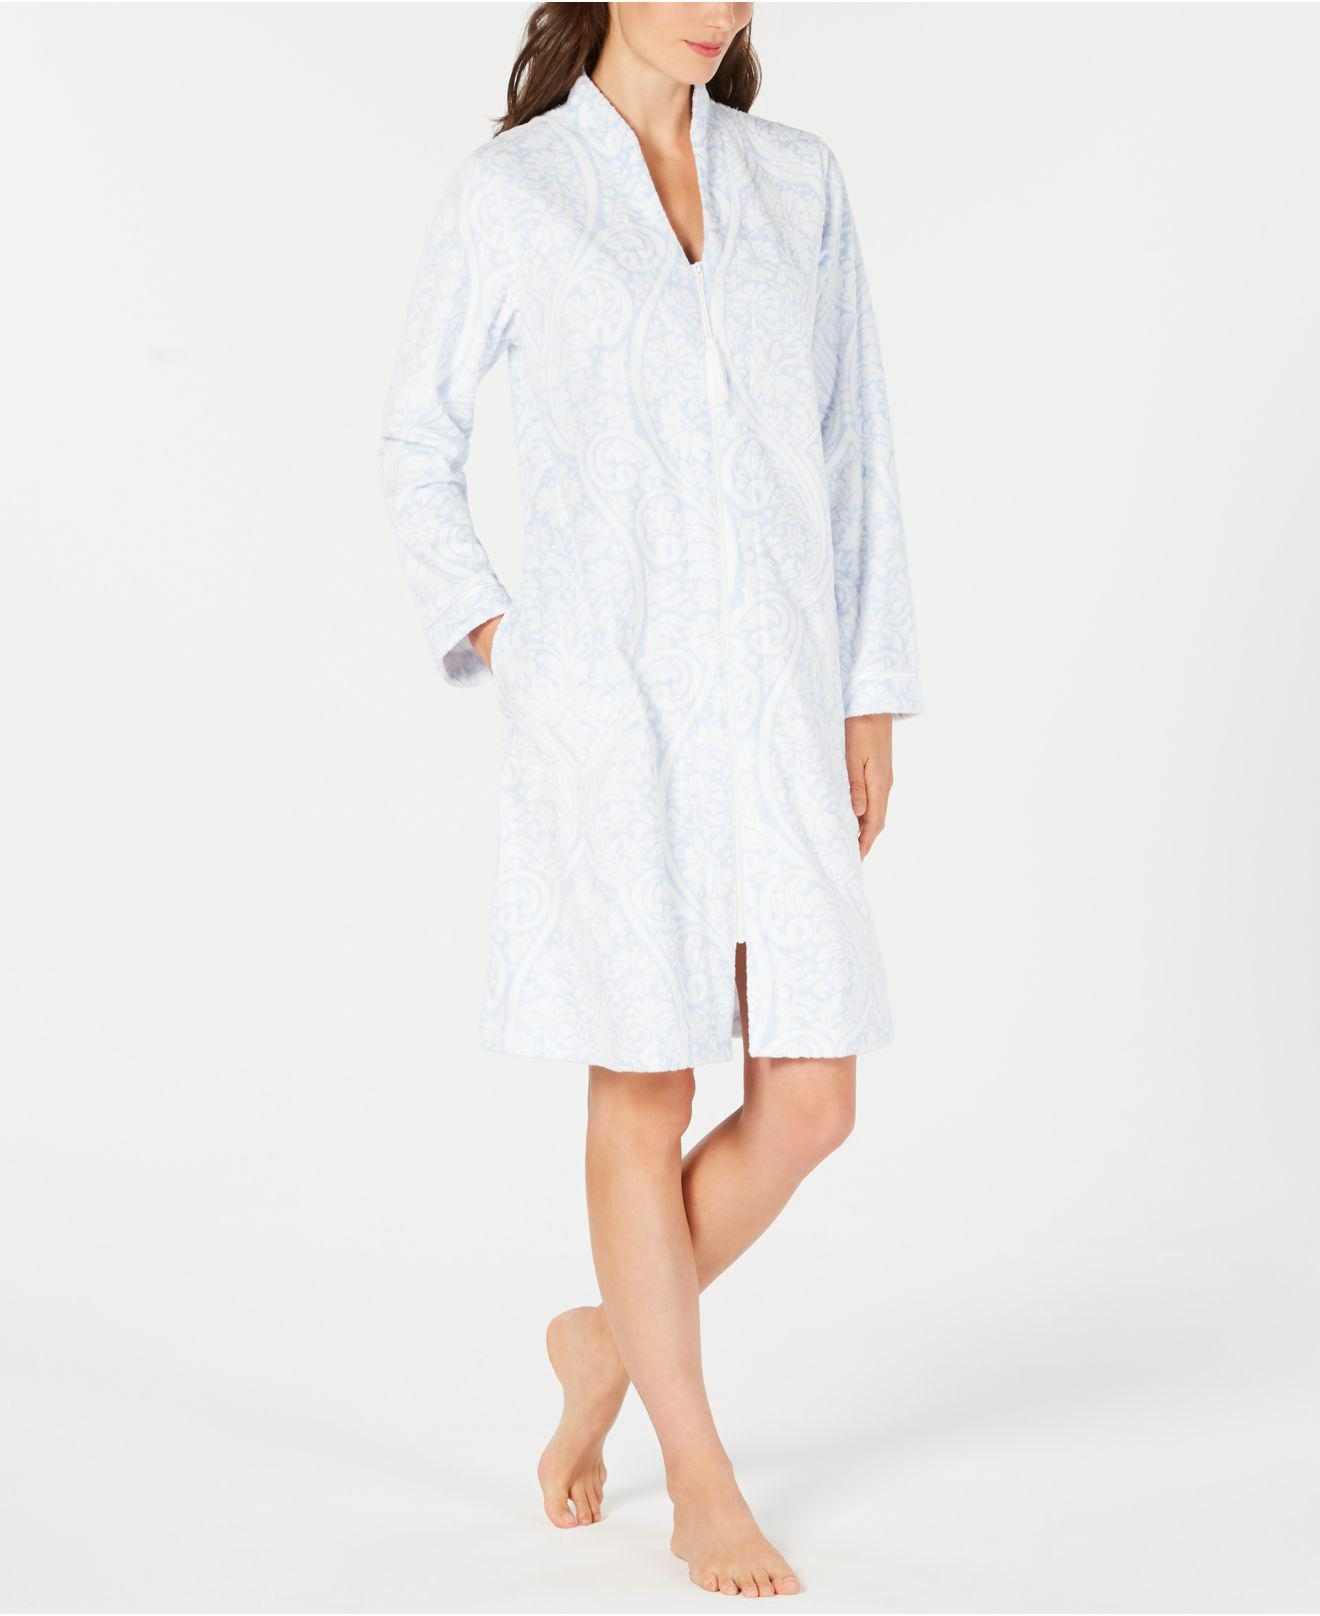 6ef1d984f0 Charter Club. Women s White Printed Zip-front Short Robe ...